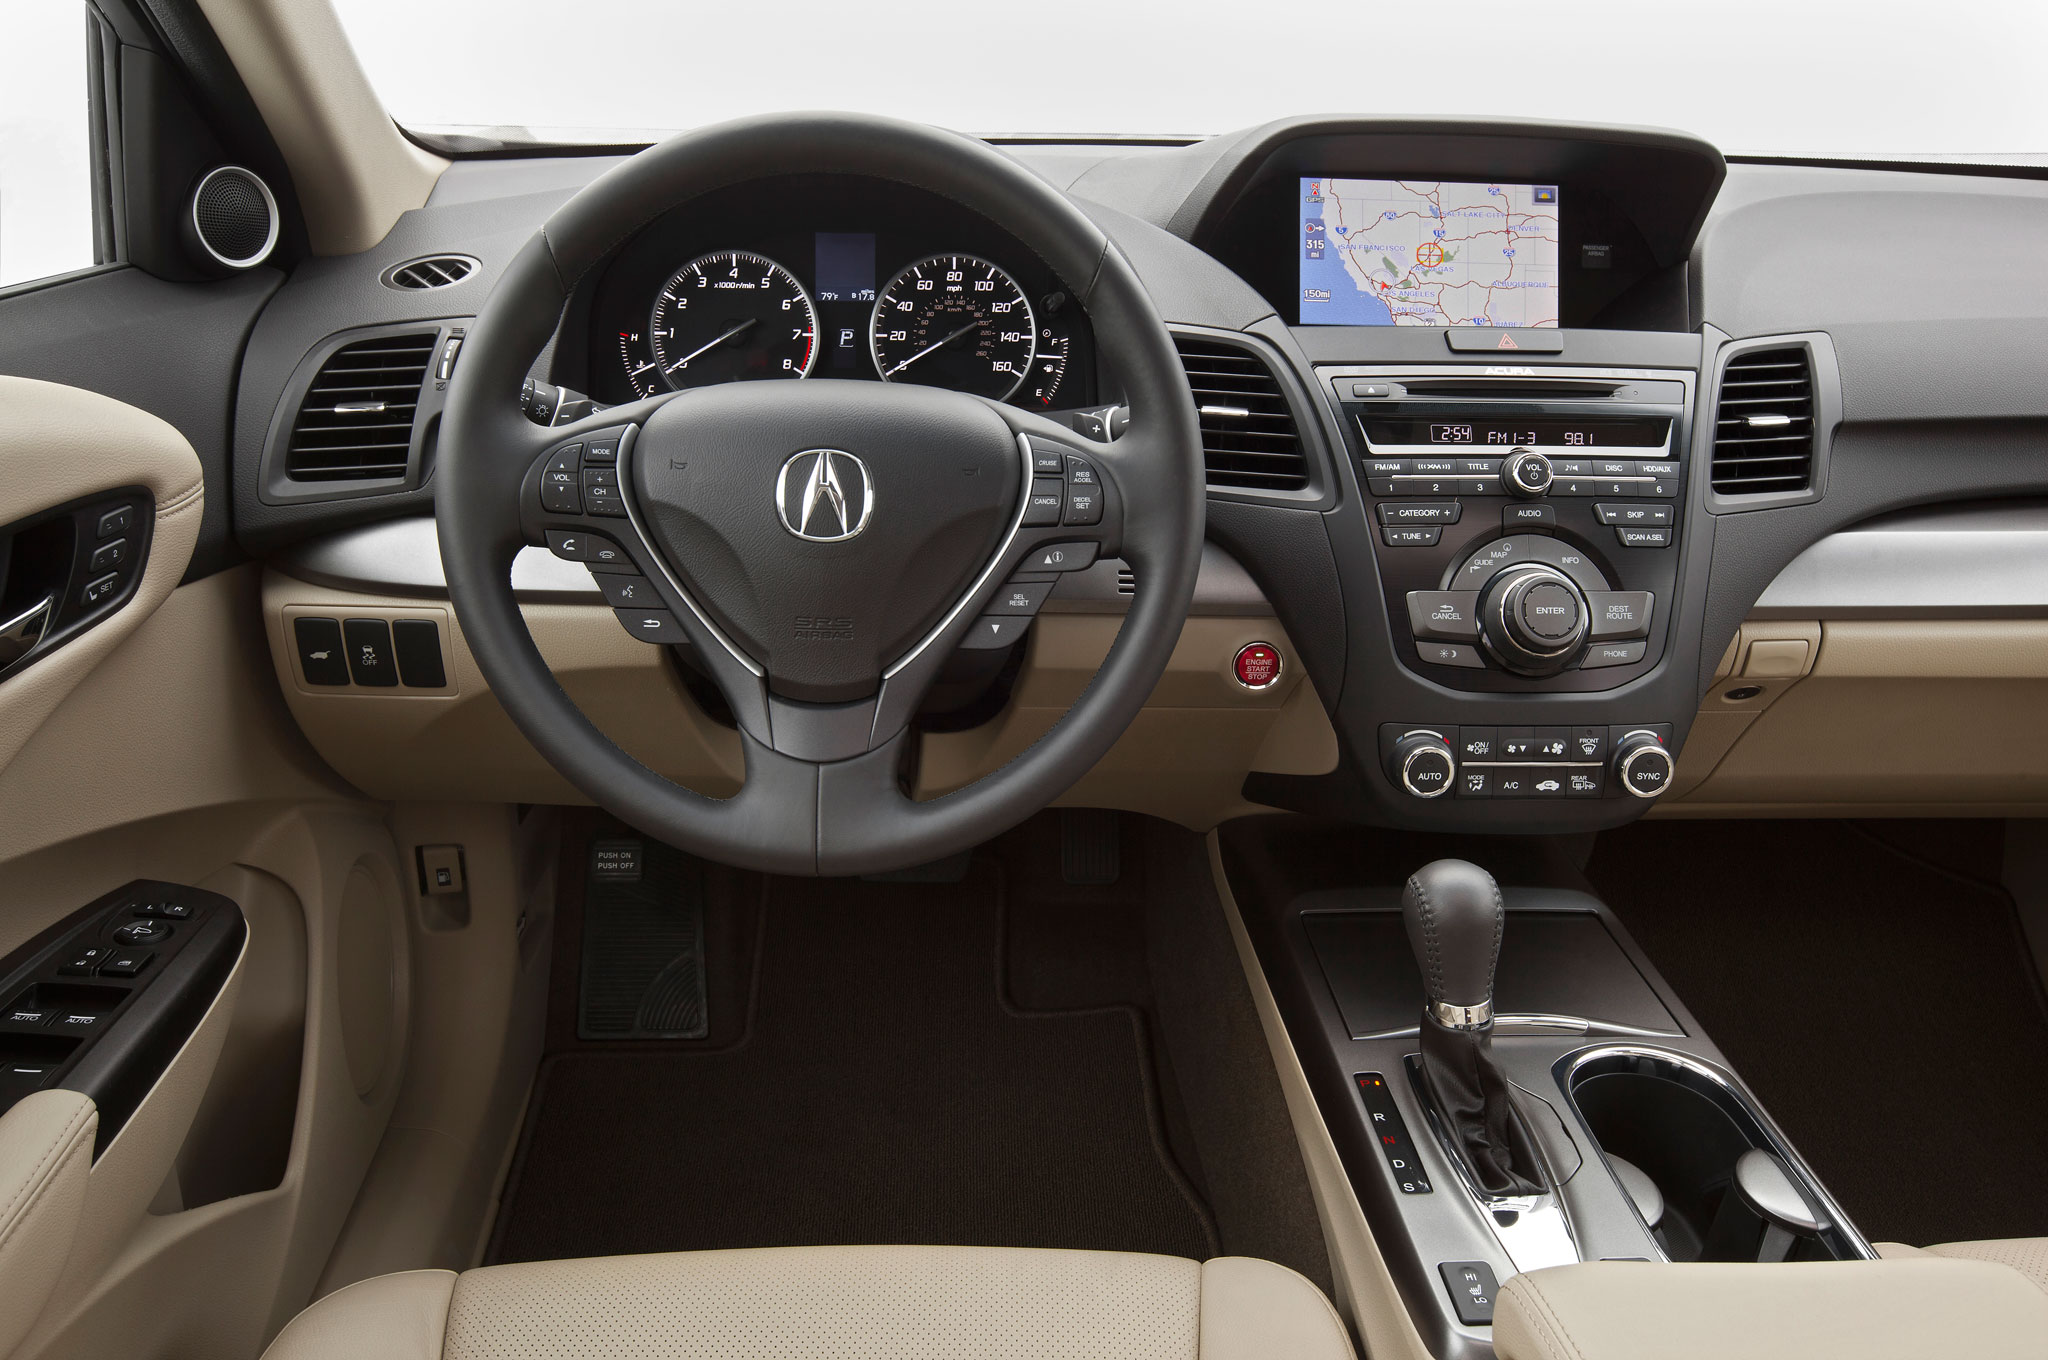 2013 Acura RDX Drivers Side Dashboard